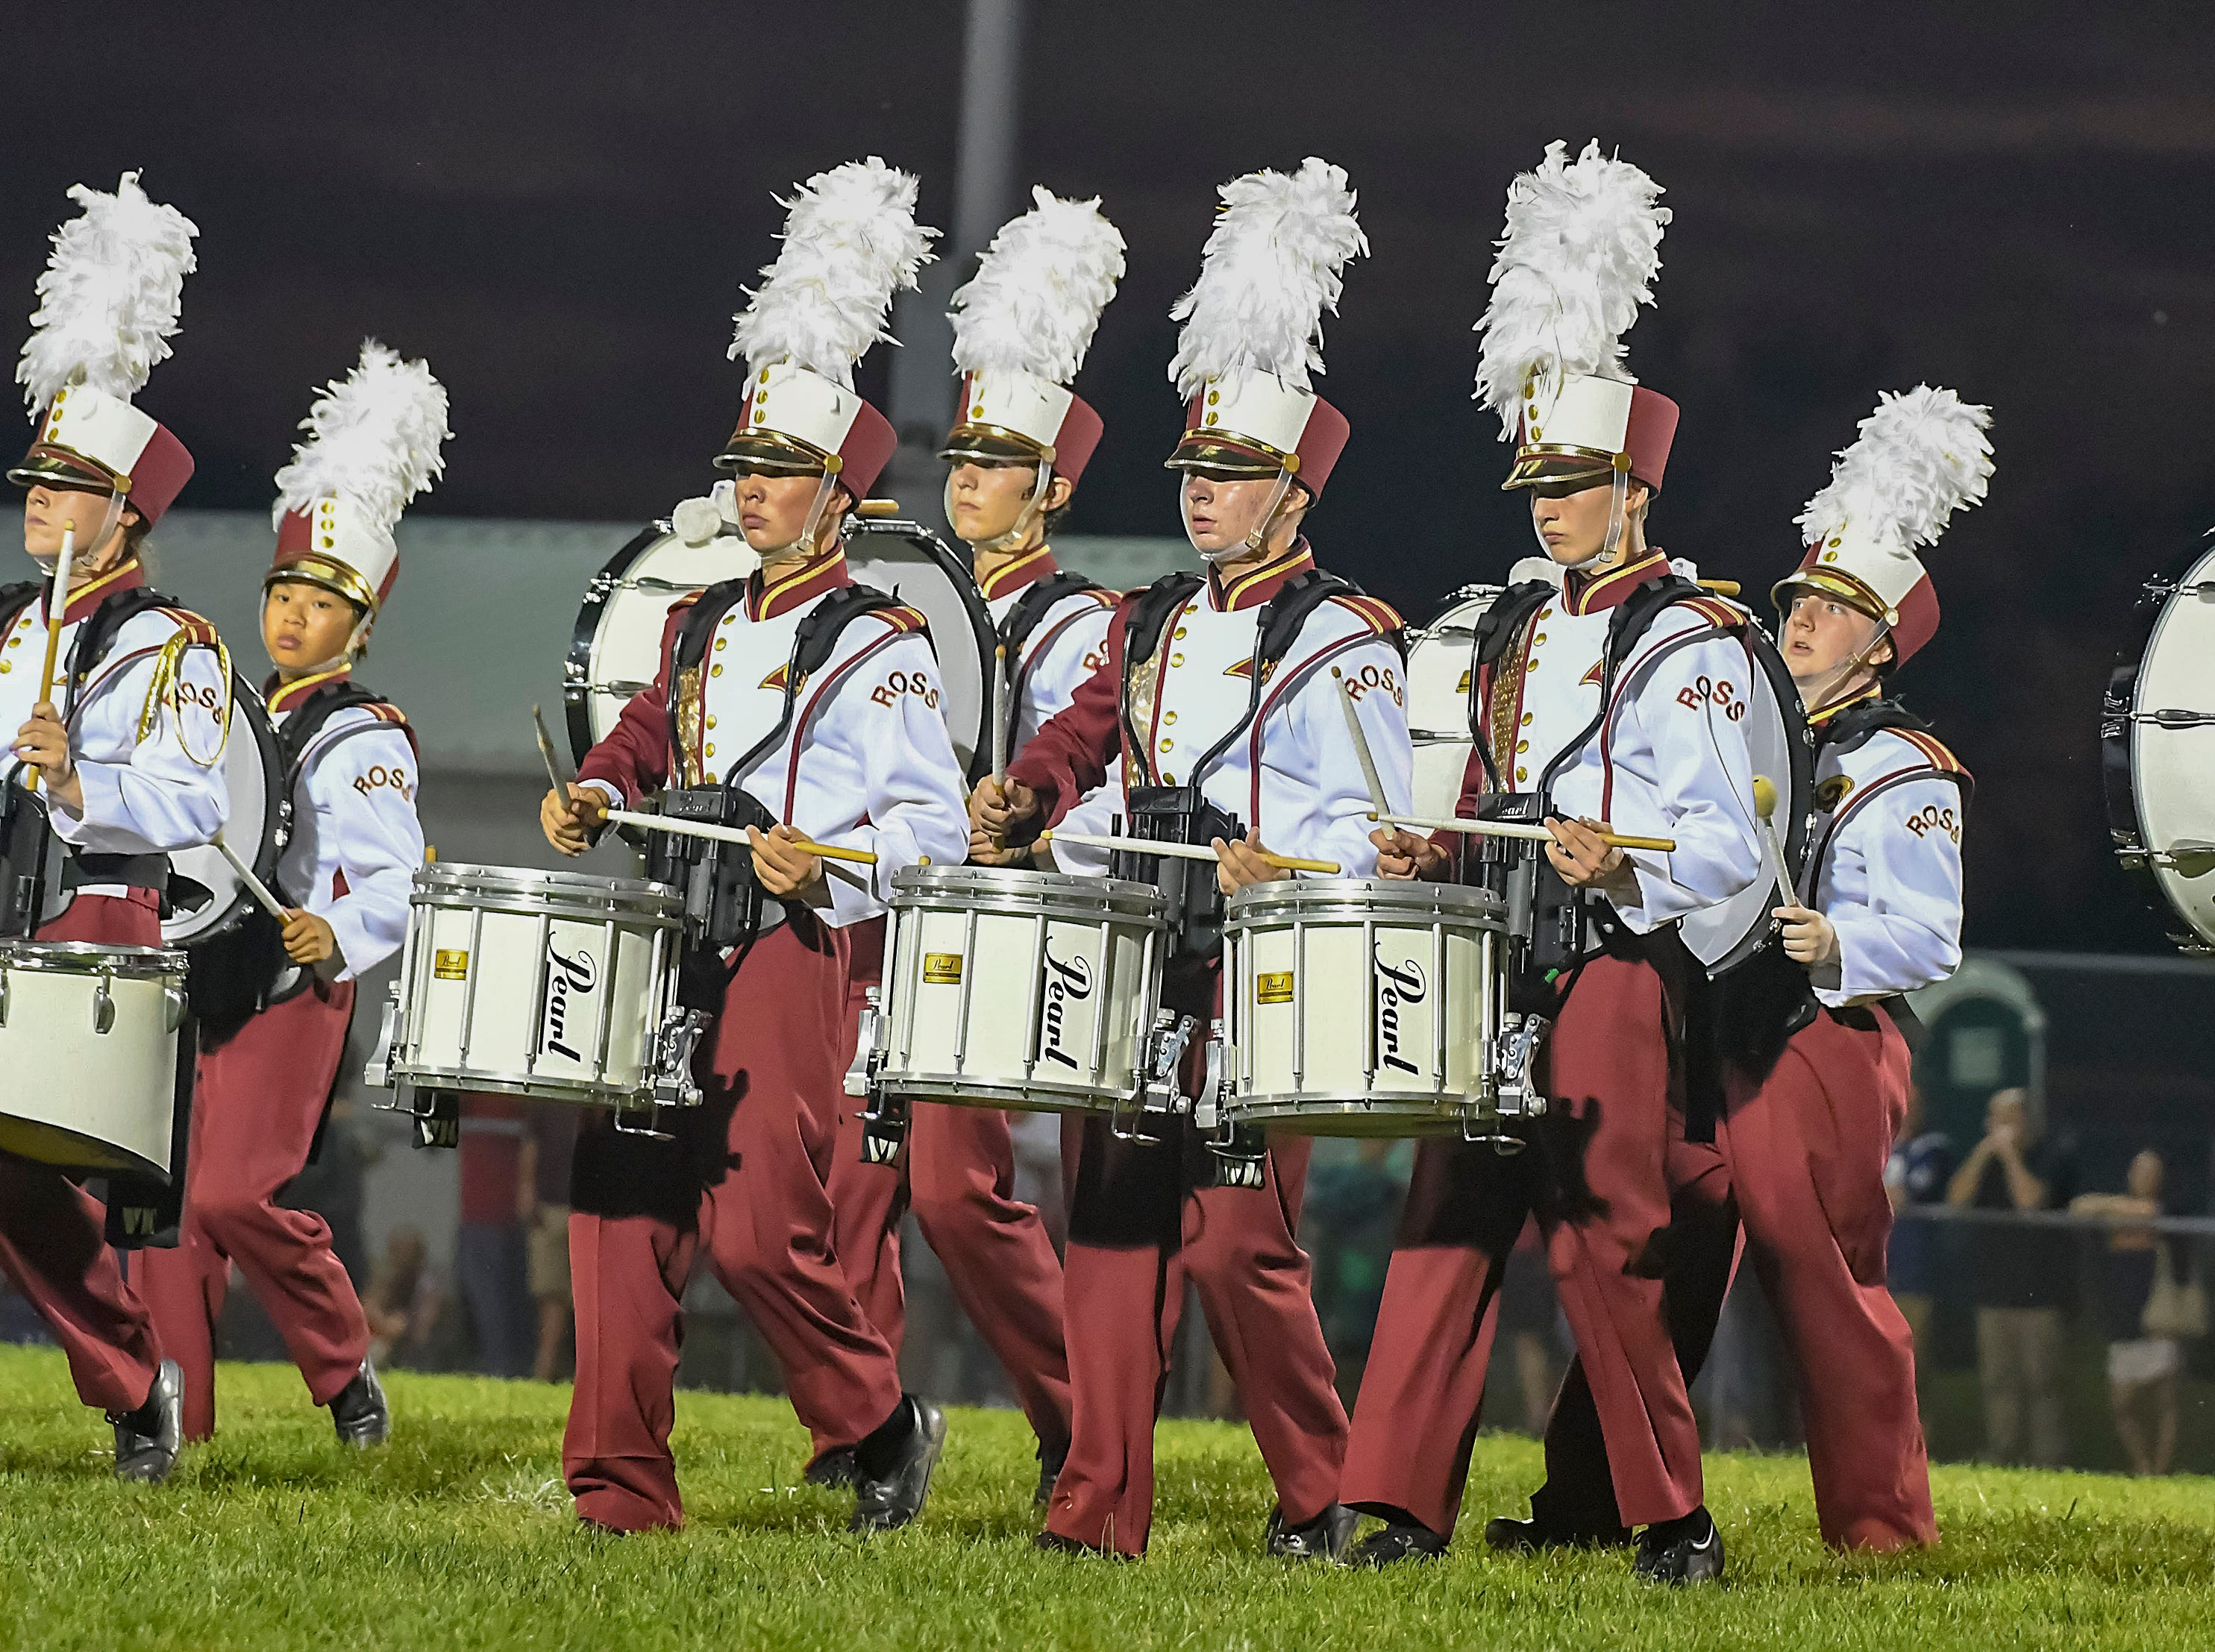 Ross band members plays their drums during halftime of the  home coming game against Harrison, Ross High School, Friday, September 14, 2018